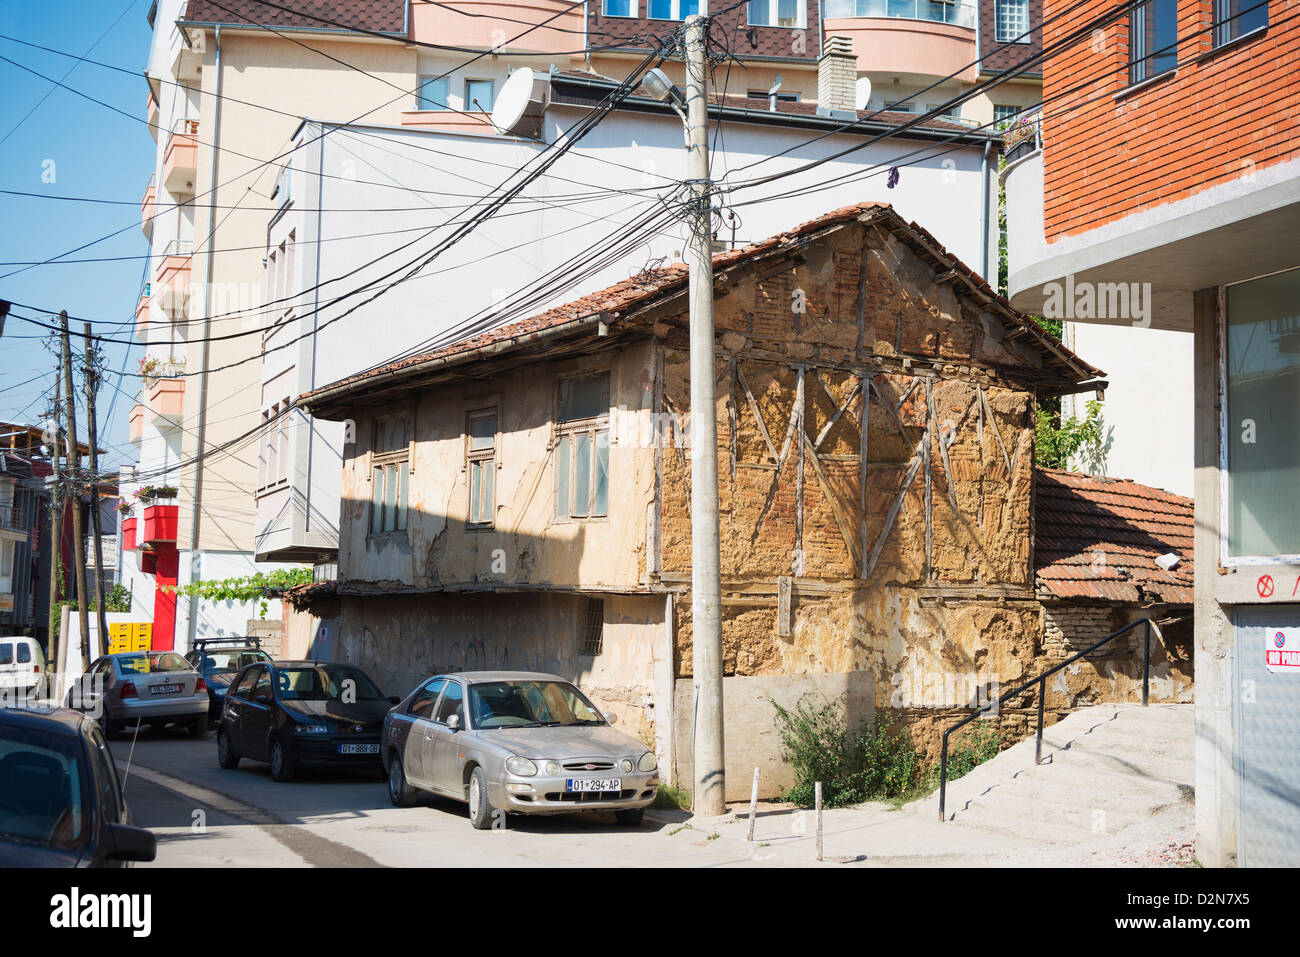 Kosovo, Pristina, old house - Stock Image